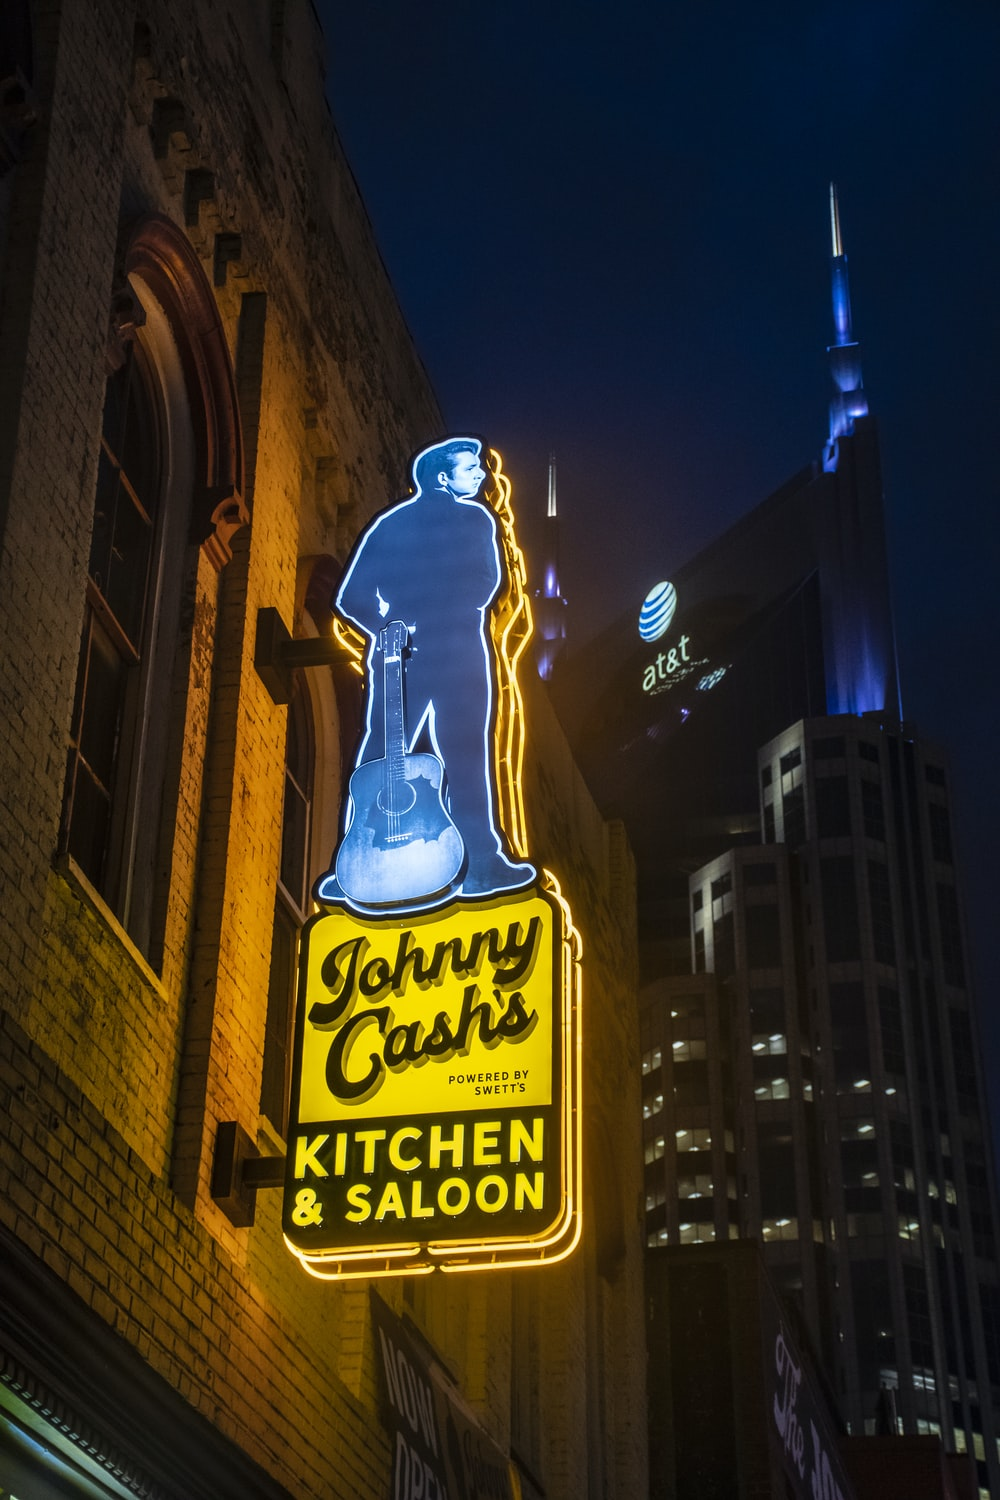 yellow and blue lighted signage